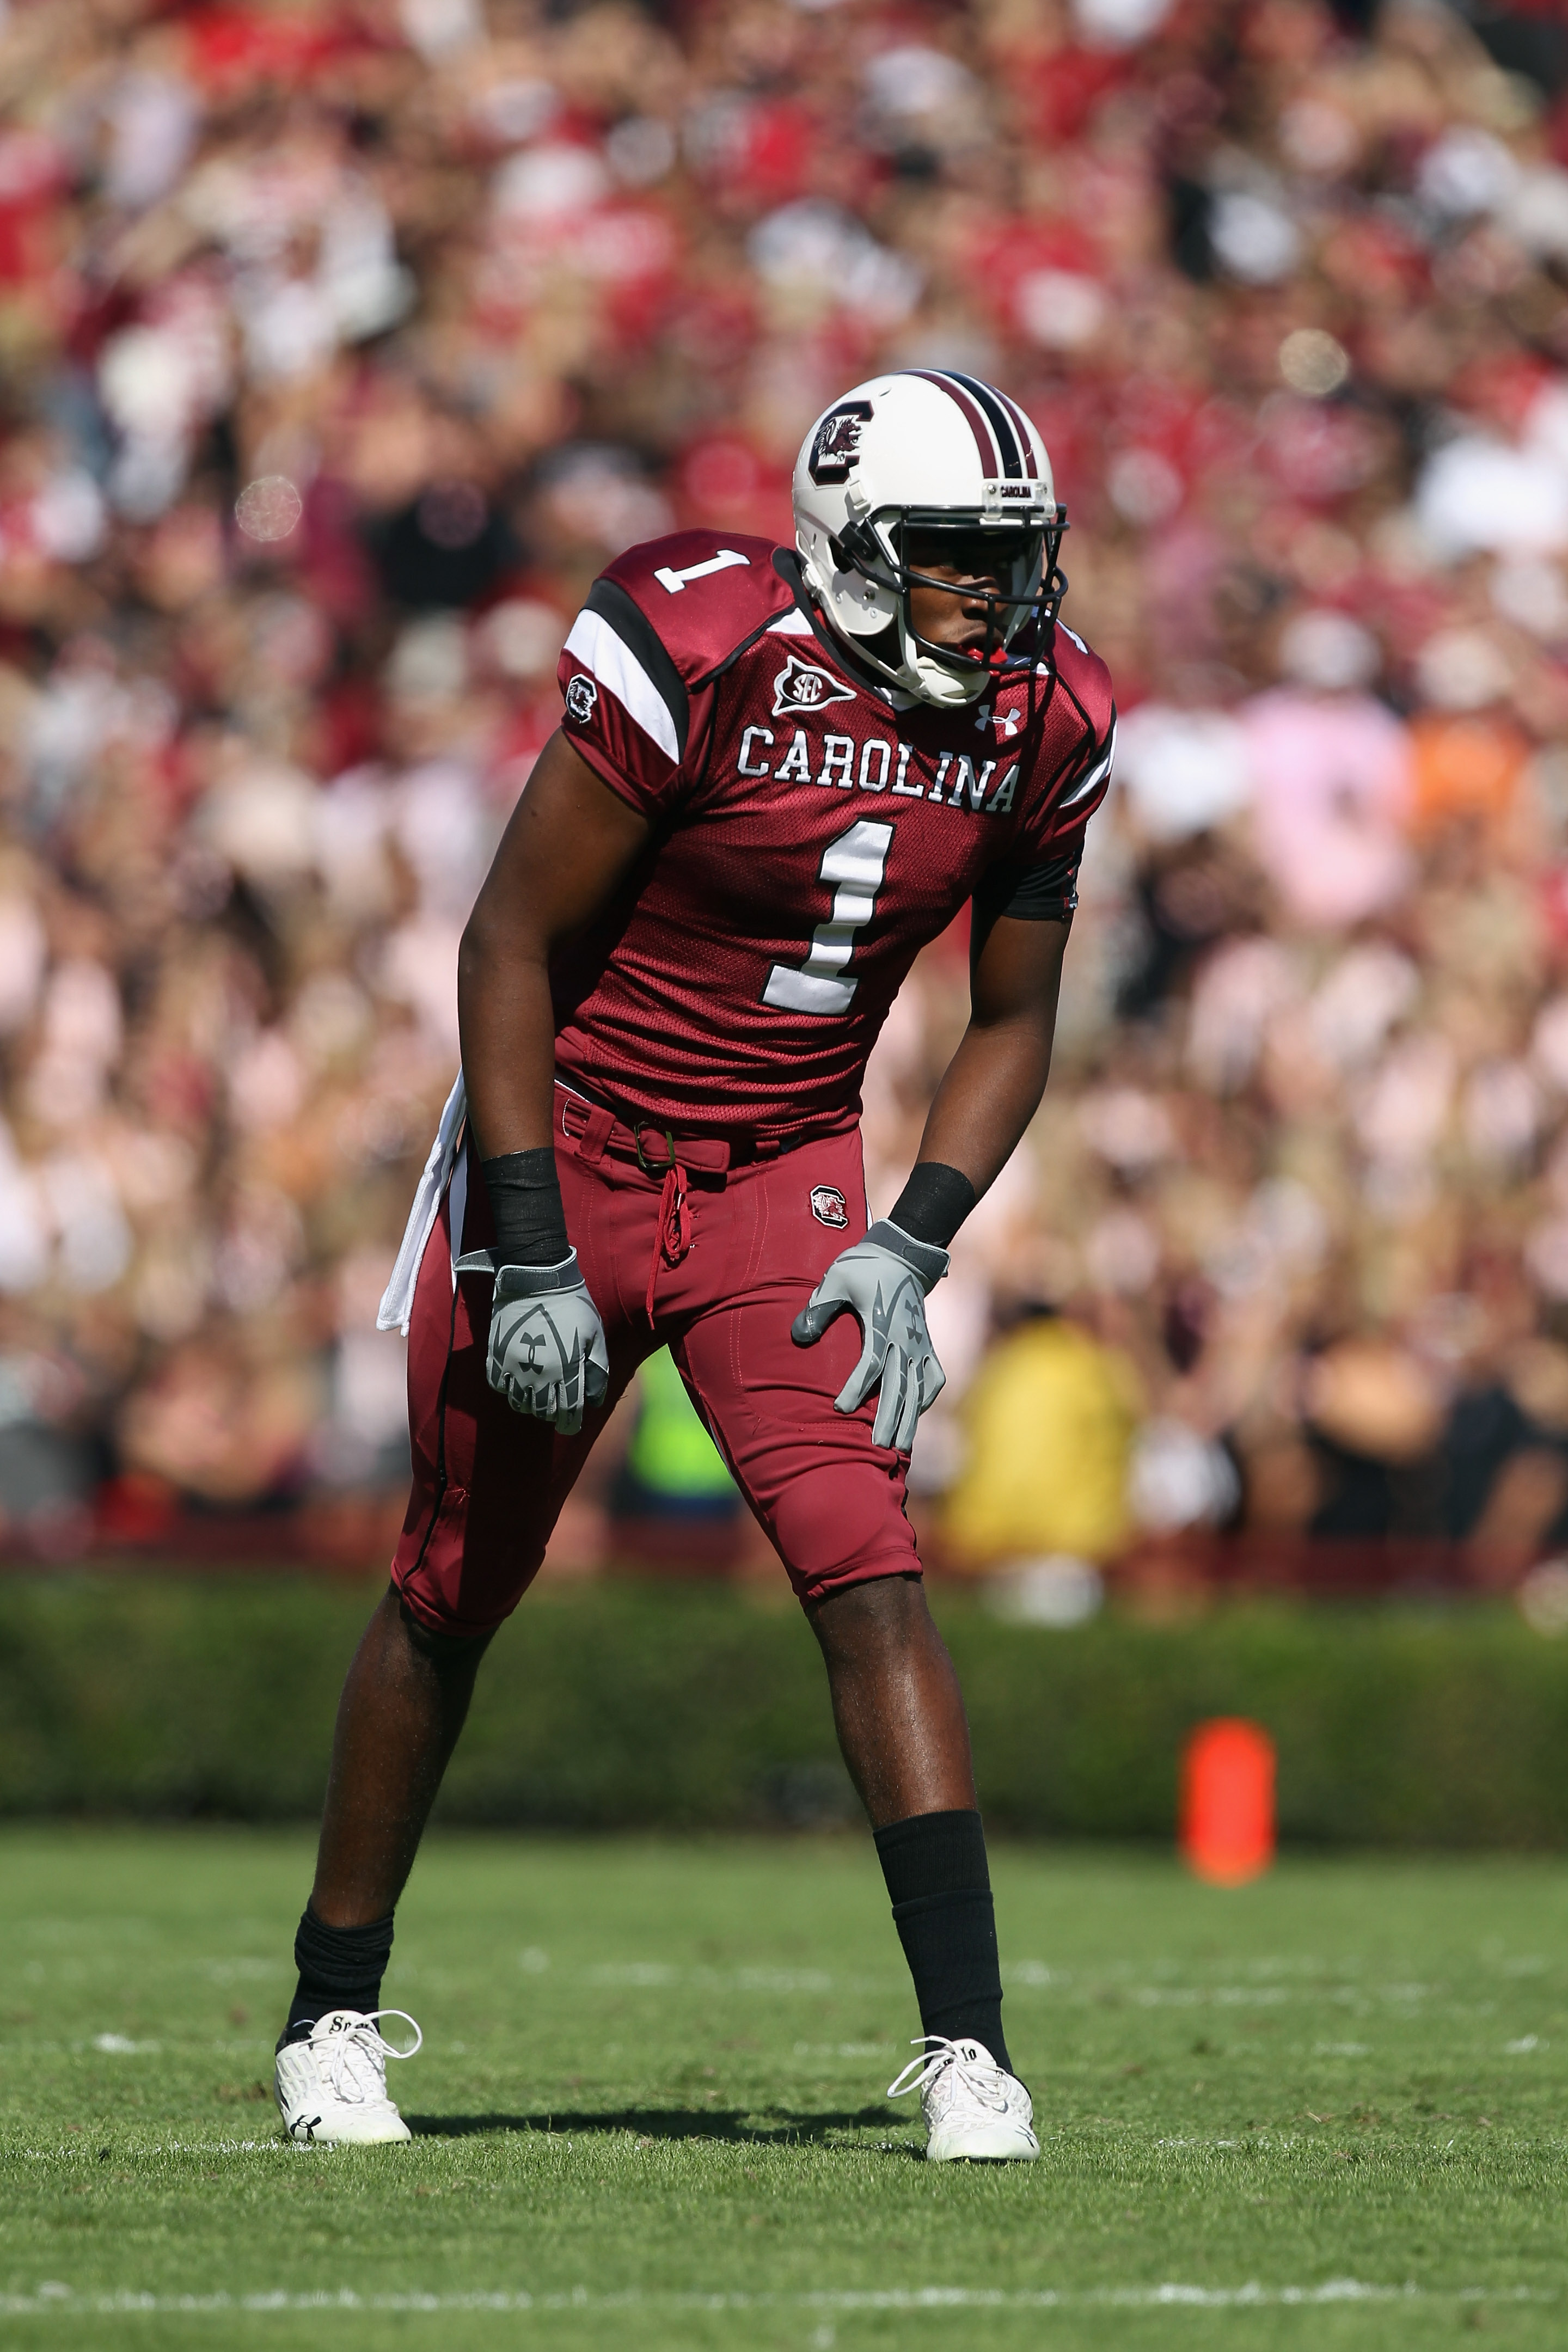 COLUMBIA, SC - OCTOBER 30:  Alshon Jeffery #1 of the South Carolina Gamecocks against the Tennessee Volunteers during their game at Williams-Brice Stadium on October 30, 2010 in Columbia, South Carolina.  (Photo by Streeter Lecka/Getty Images)